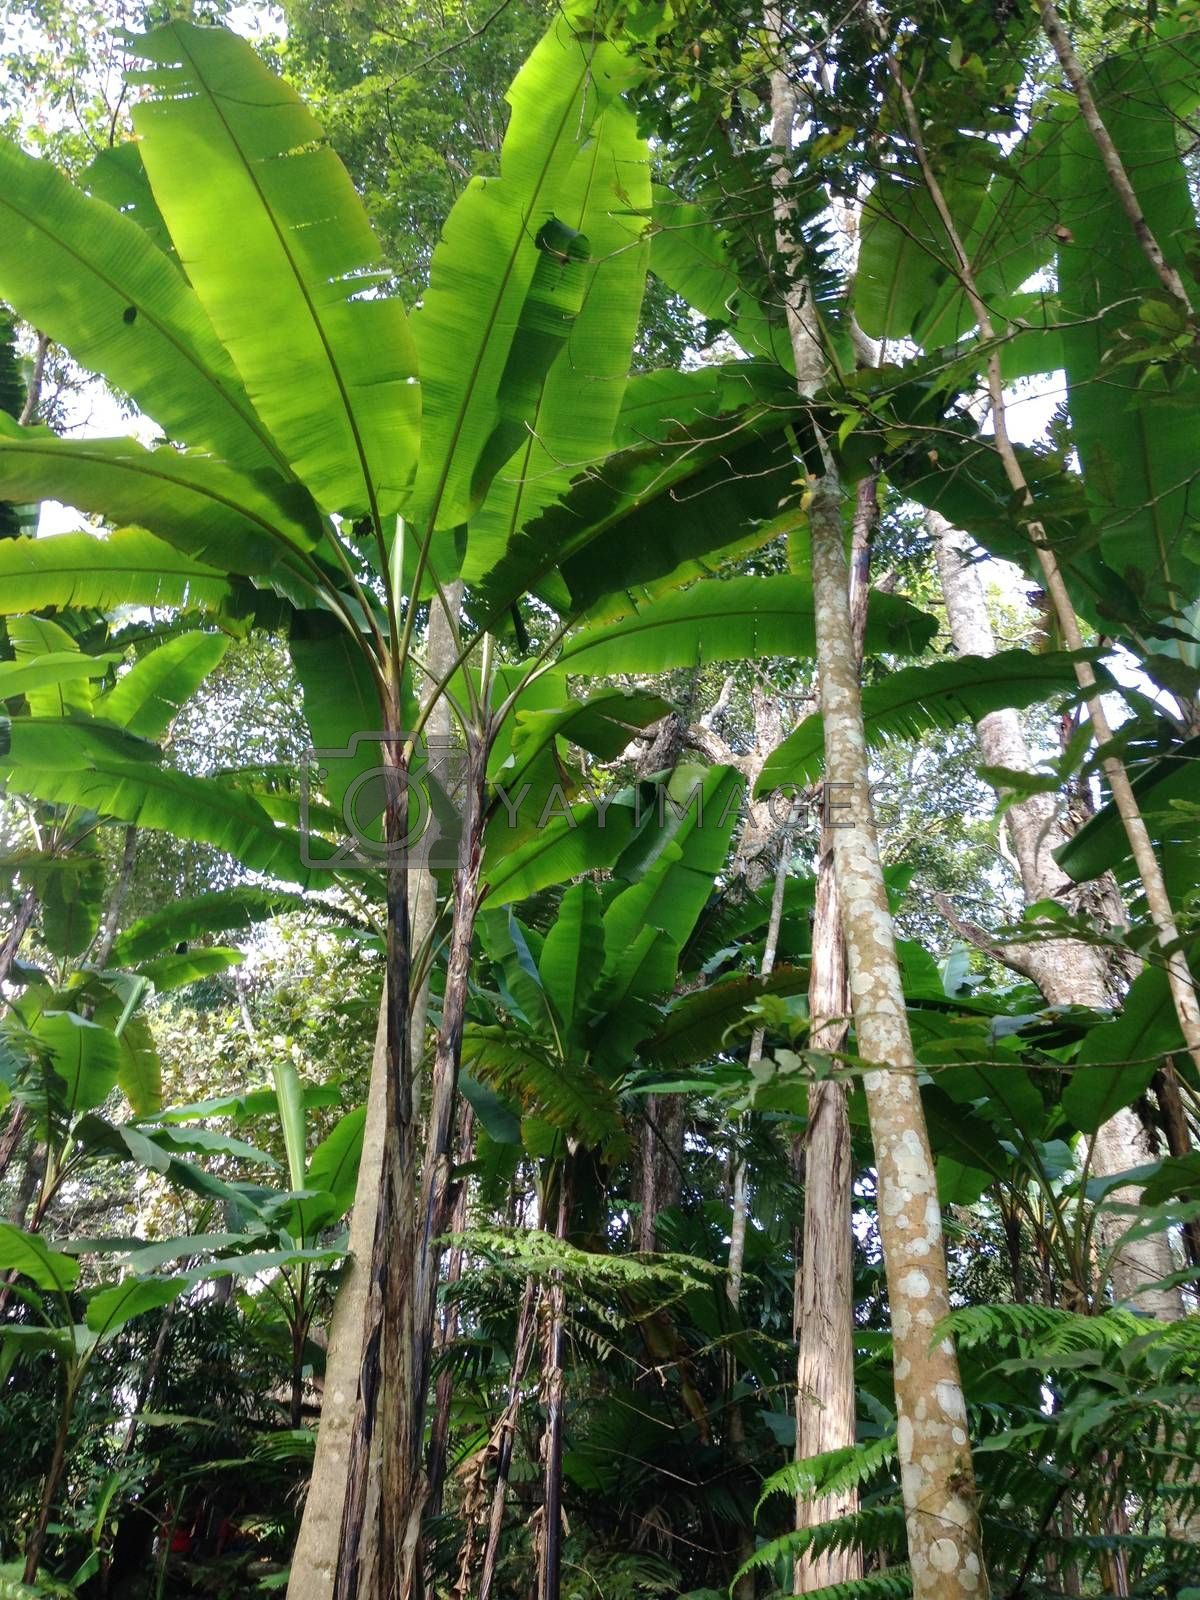 Royalty free image of the banana trees in a park , Thailand by pandara